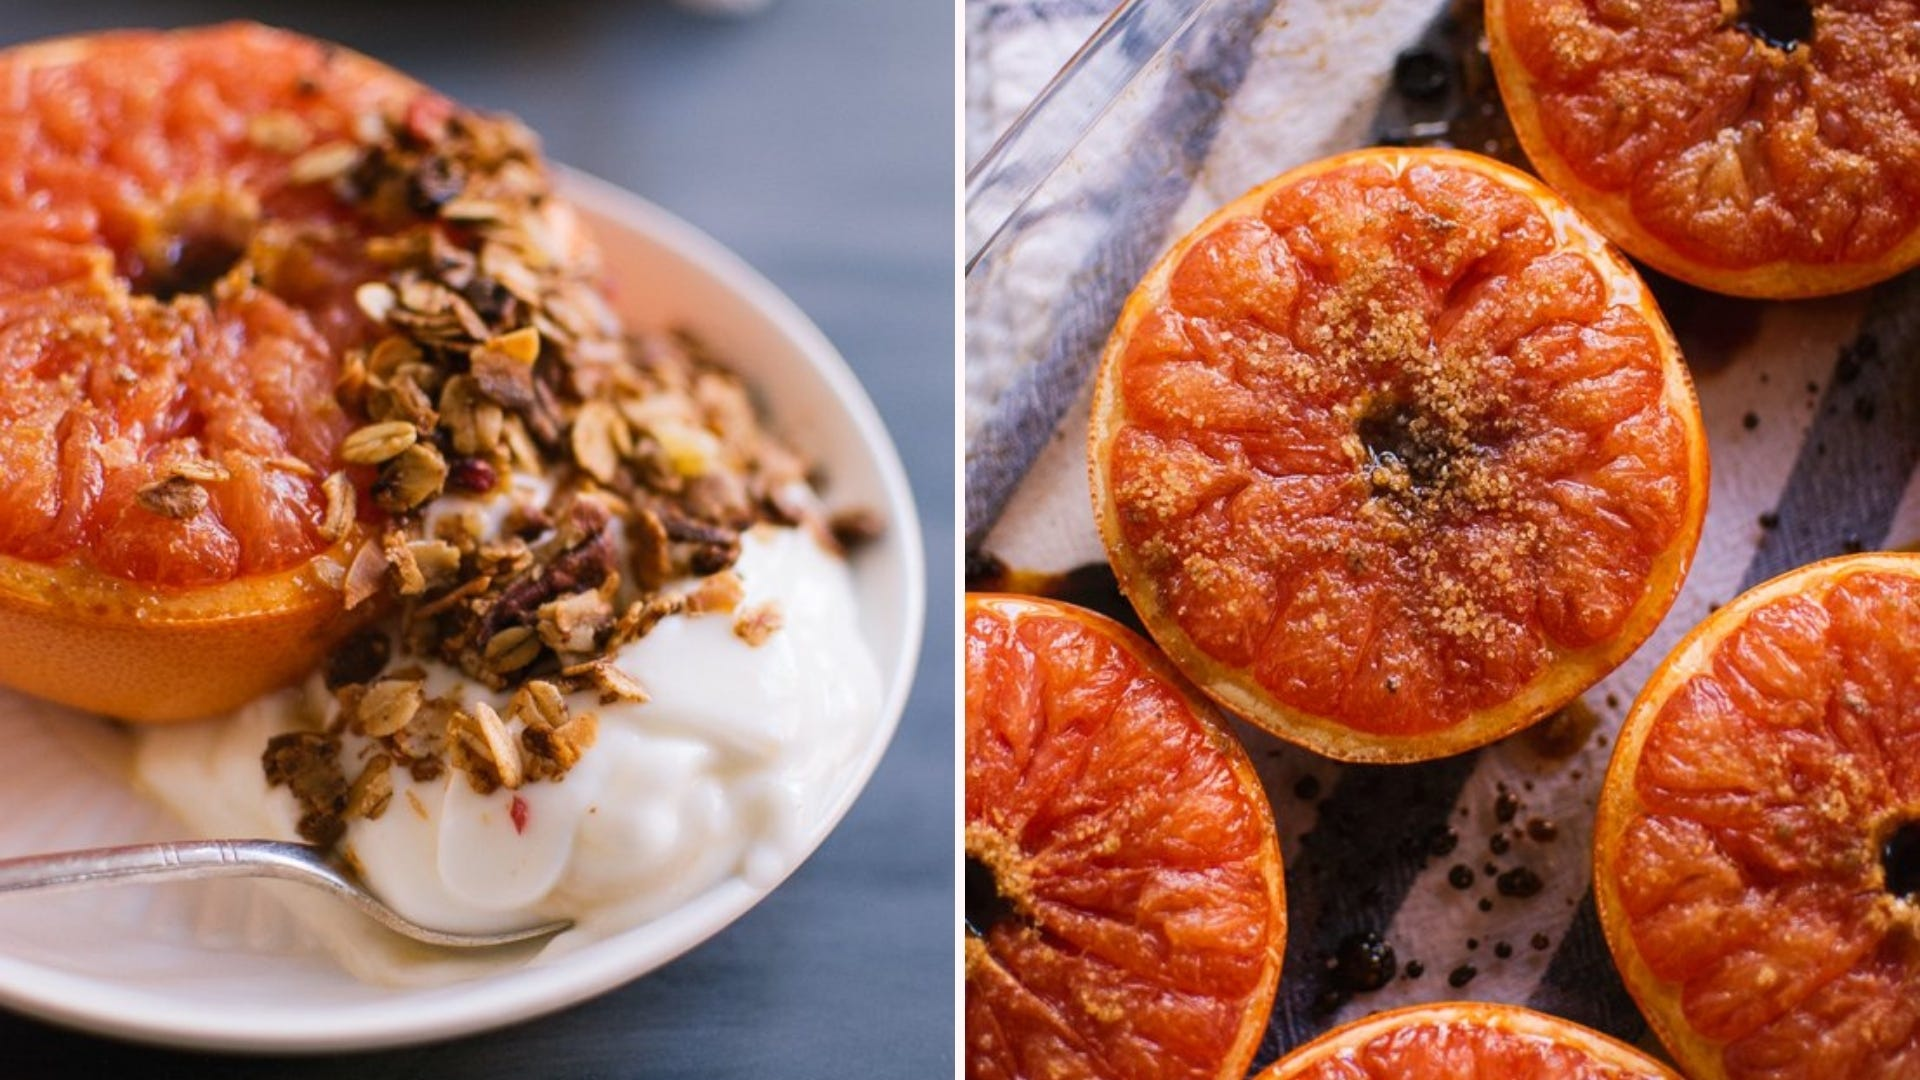 Broiled grapefruit with yogurt and granola on the side